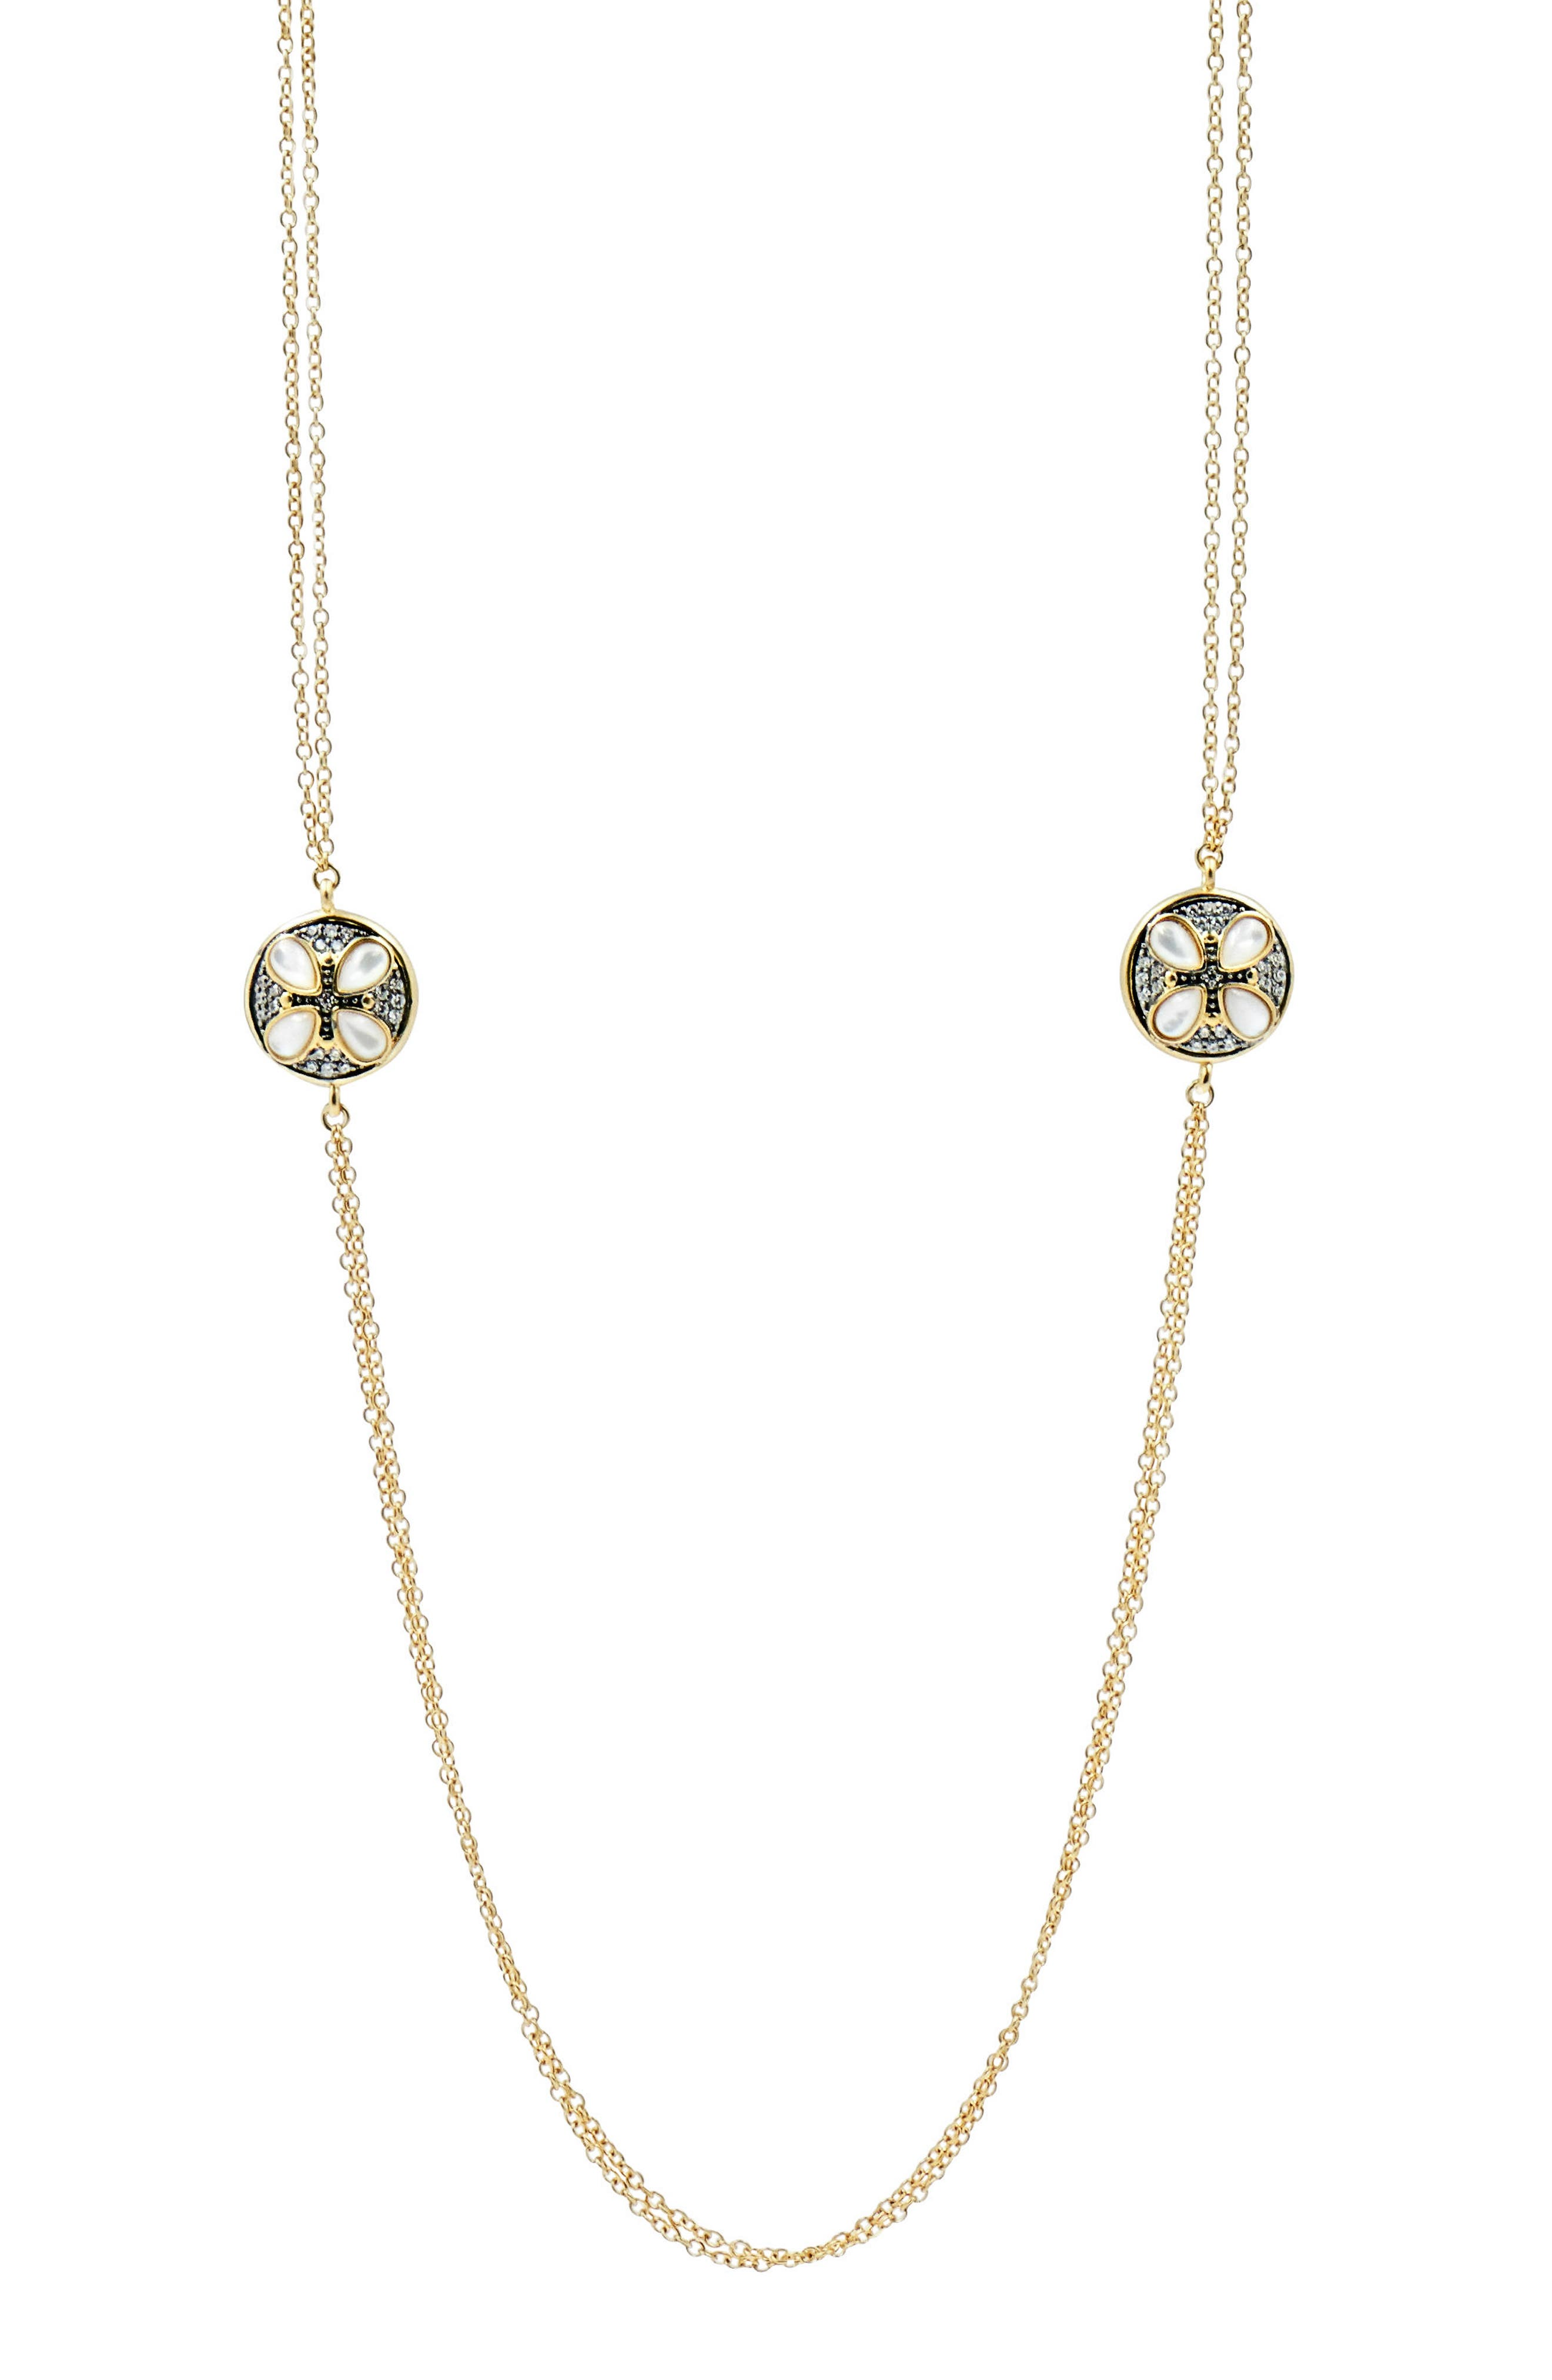 FREIDA ROTHMAN Fleur Bloom Deux Petal Necklace